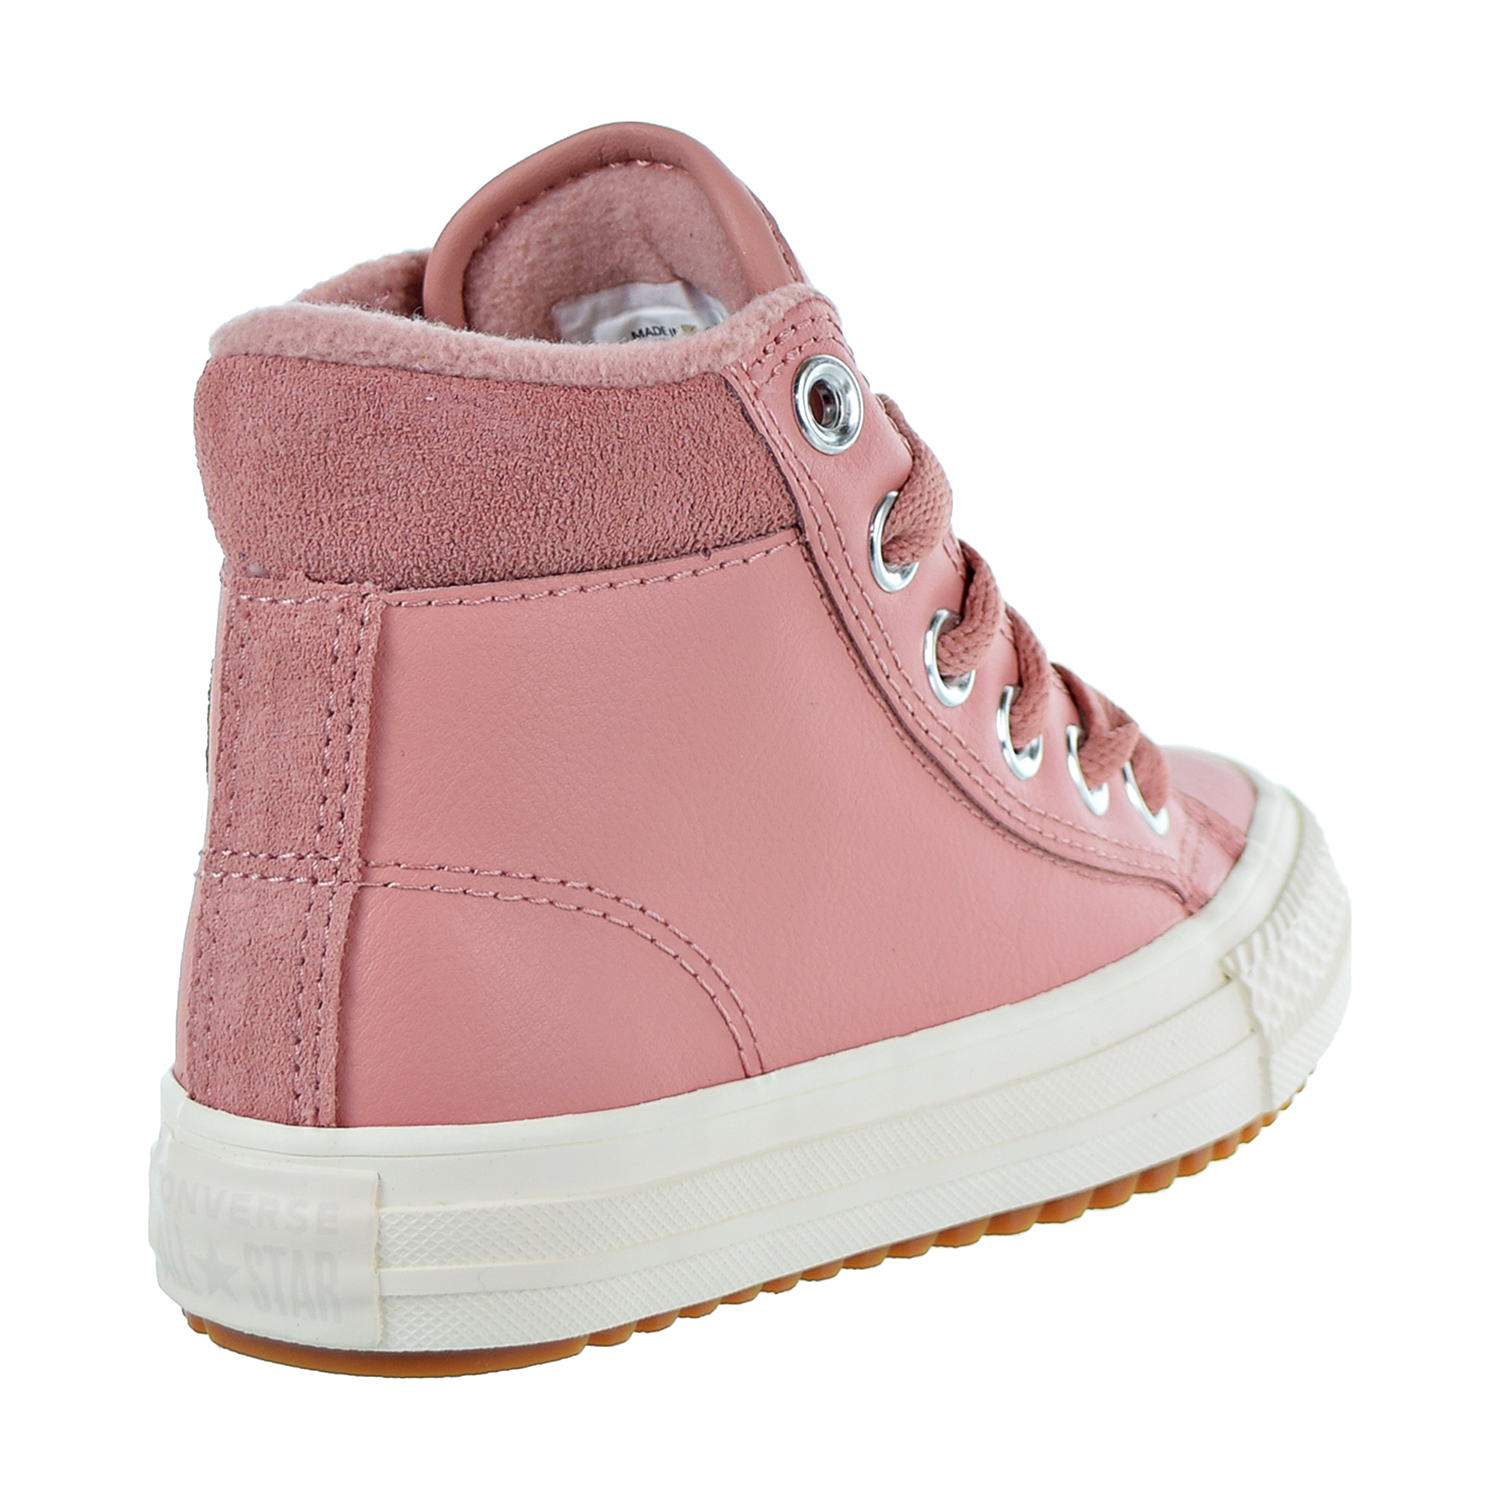 Converse Chuck Taylor All Star PC Boot HI in pink 661905C